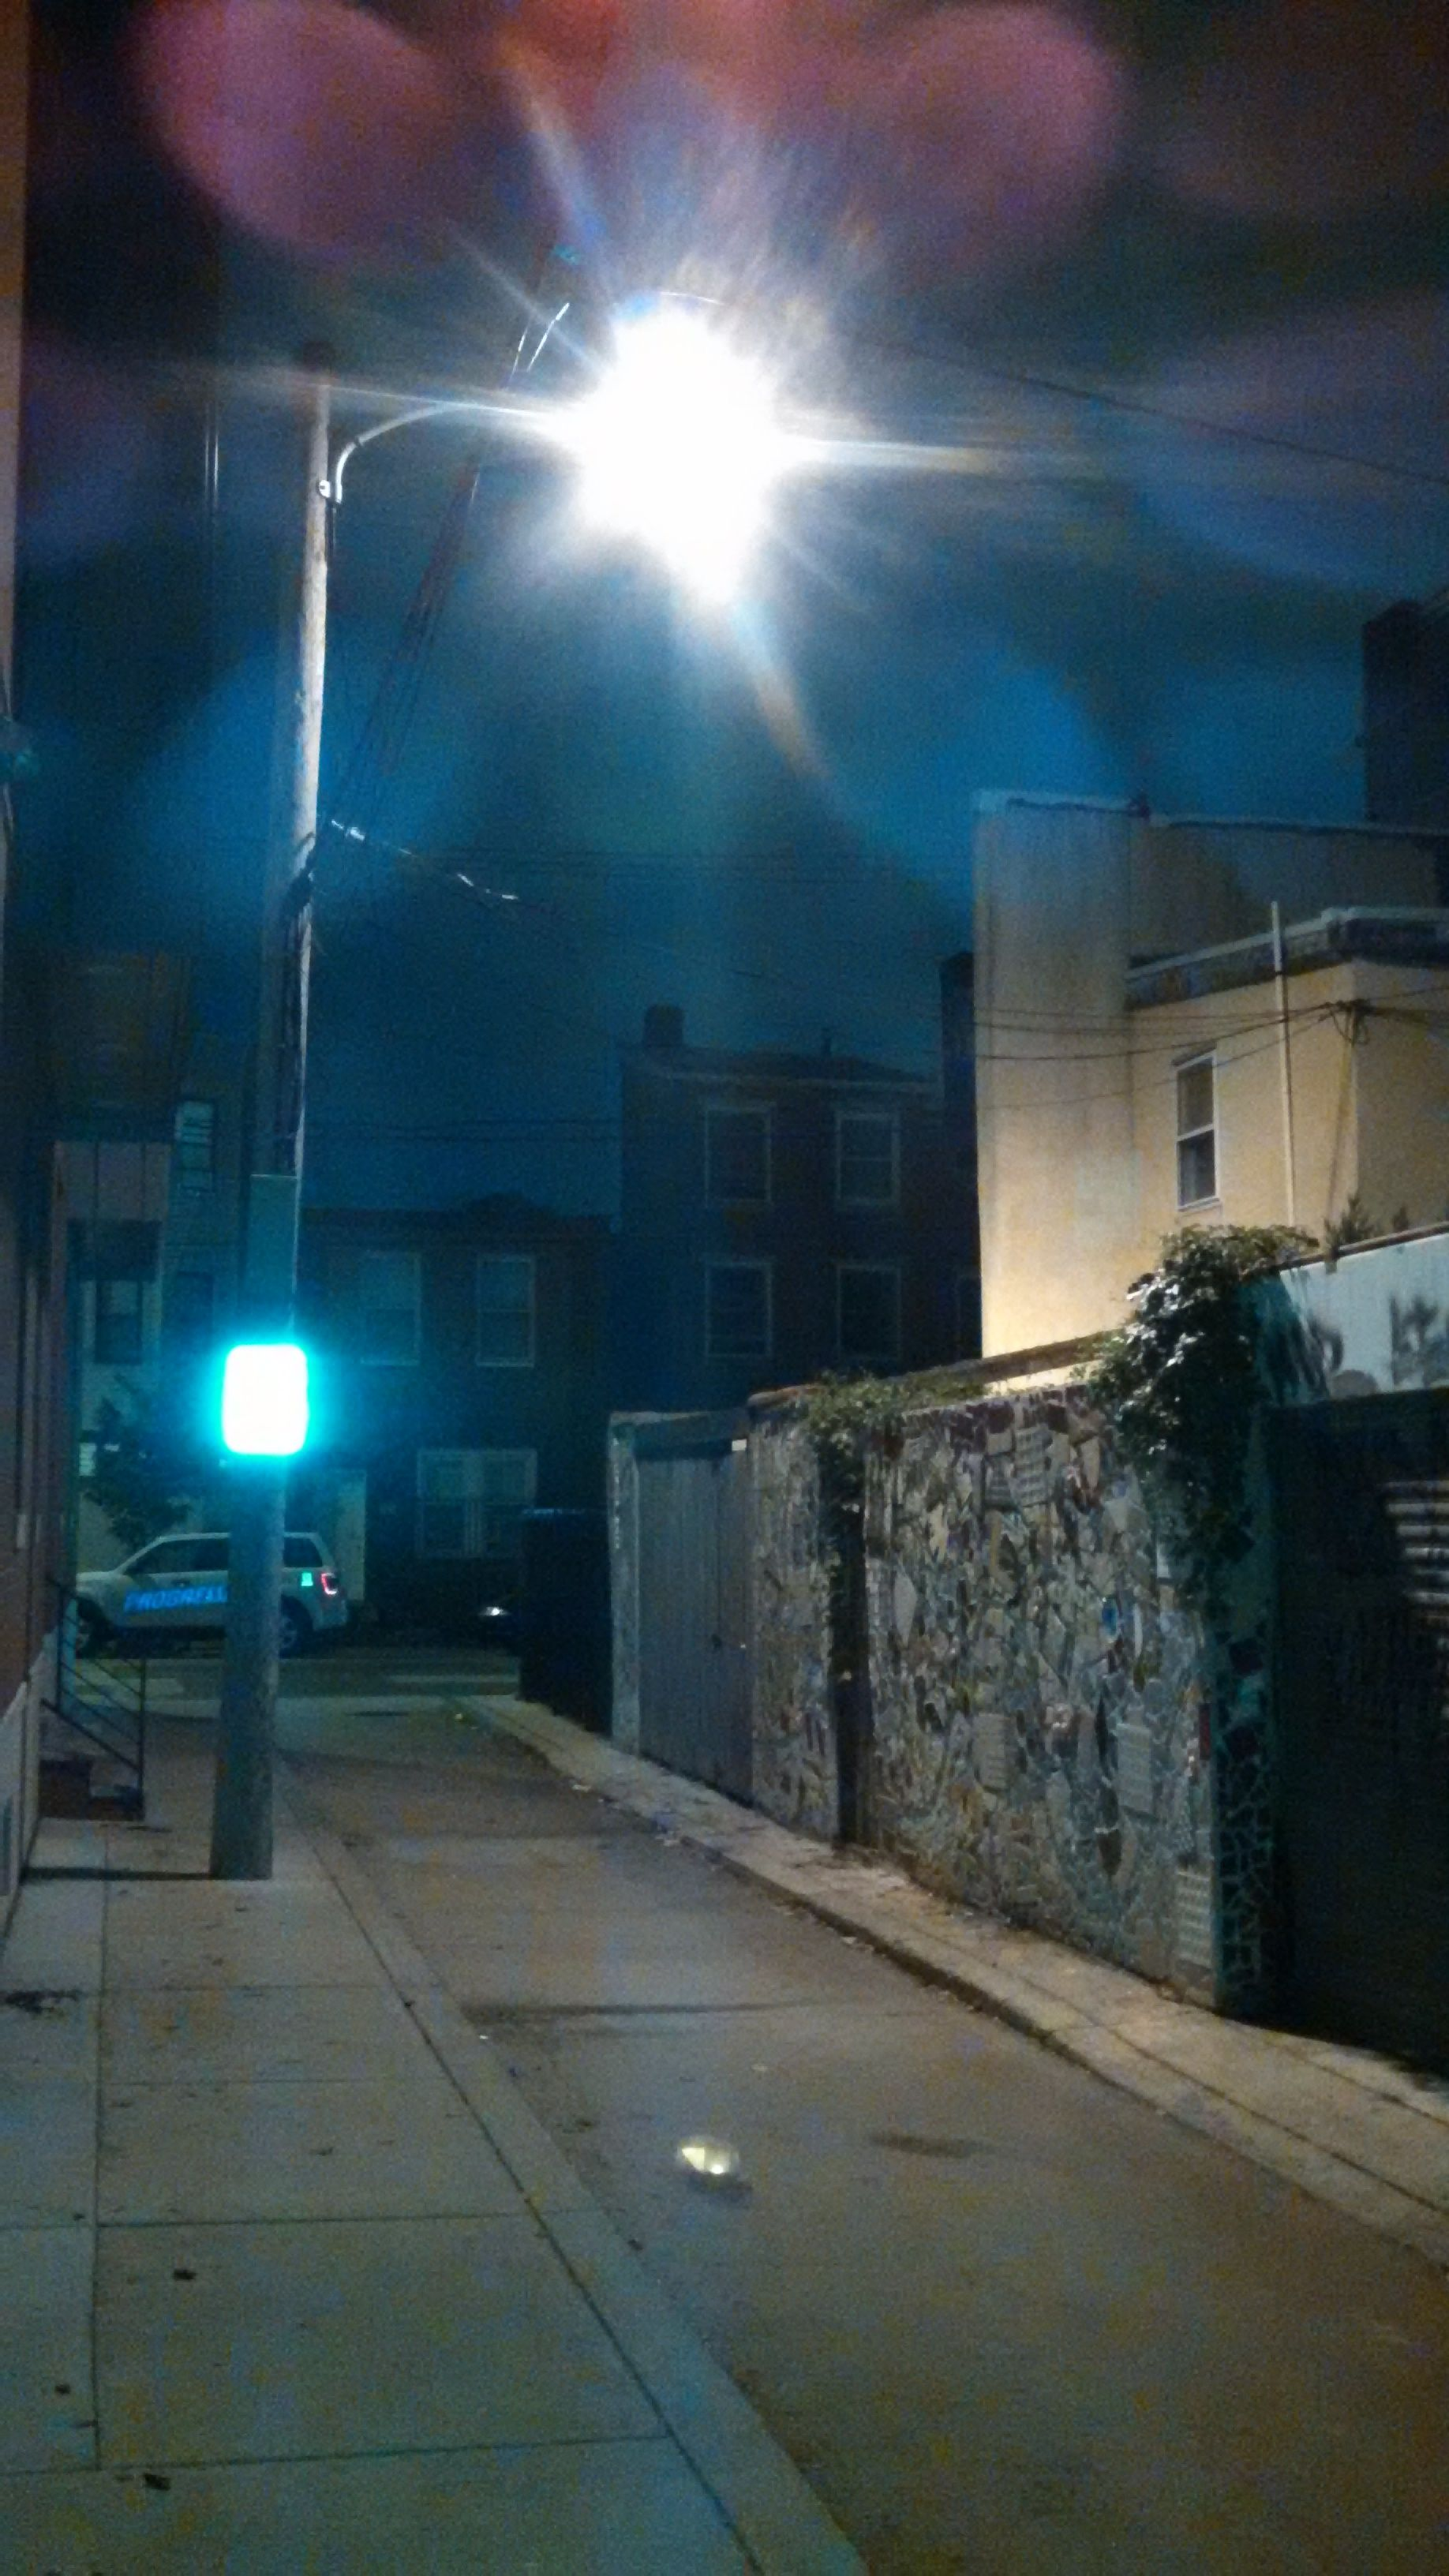 This streetlamp does a wonderful job of lighting my back alley BUT it also lights my library and the interiors of all of the neighbor's homes.  I think a full shut off cowling would provide safety lighting and bring peaceful darkness to our homes. Next step - talk to the city about making that change. #DarkSkies